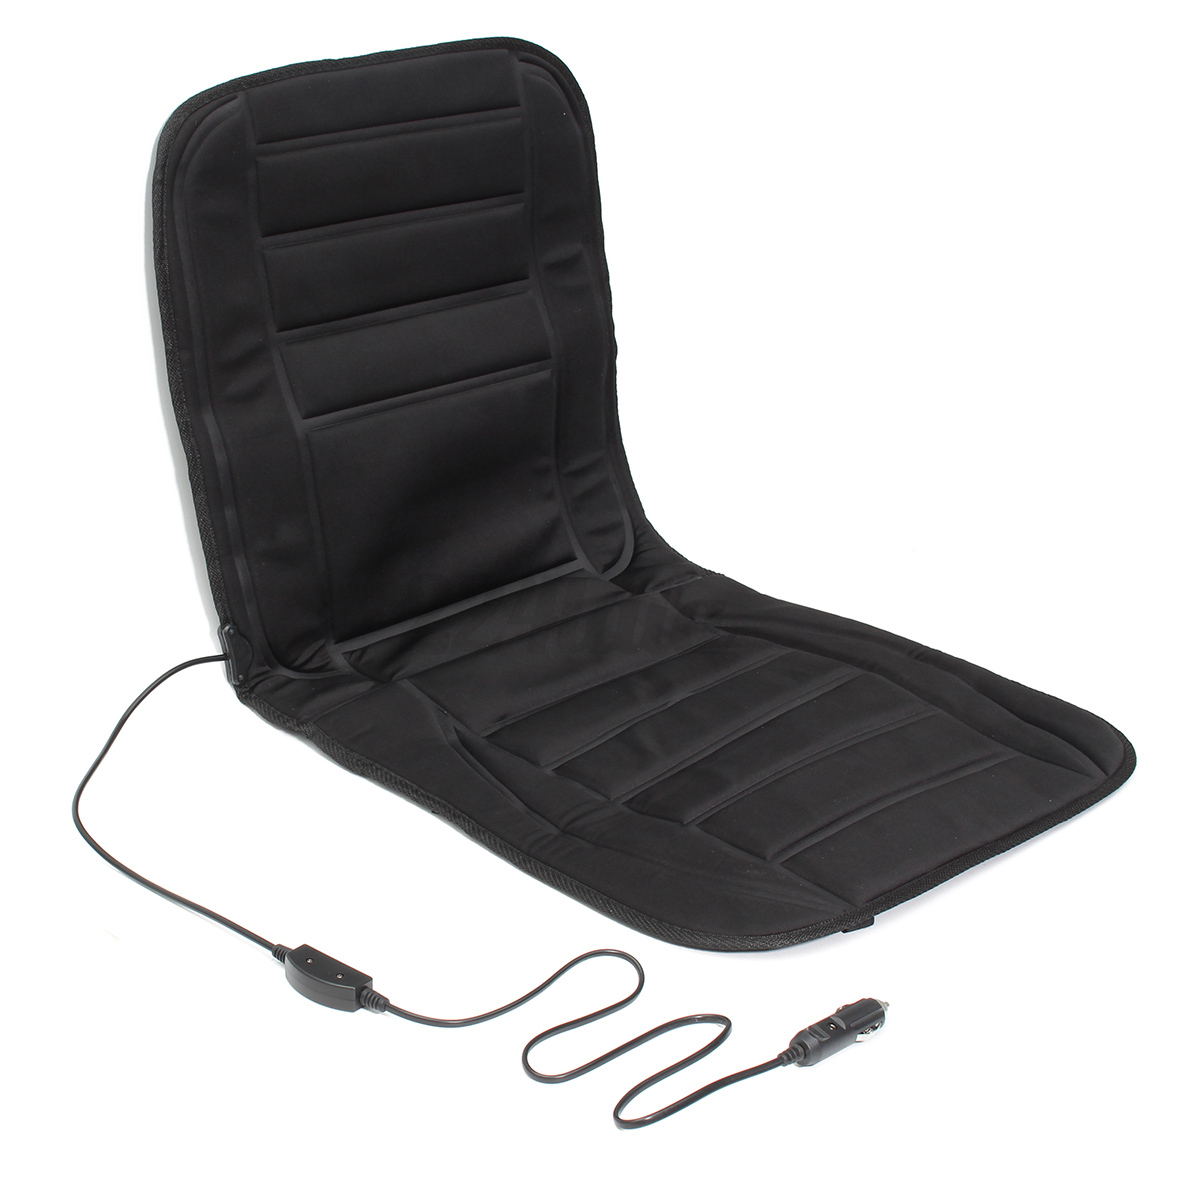 massage pads for chair with shade canopy seat cushion car back heat massager lumbar